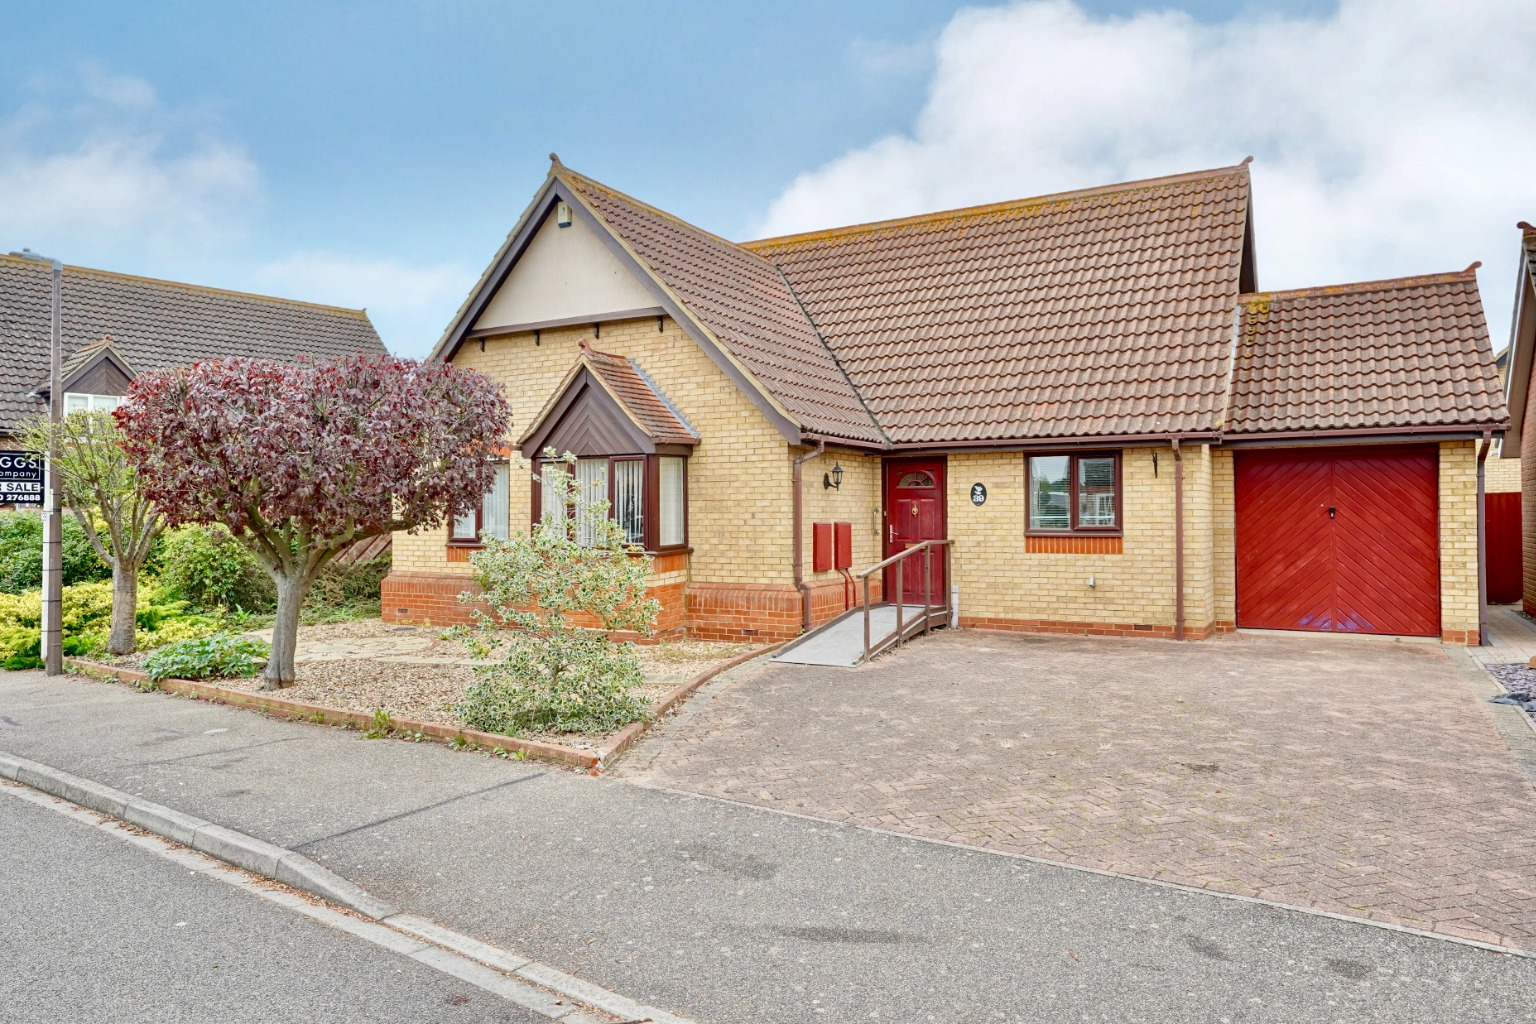 3 bed semi-detached bungalow for sale in Merlin Drive, Sandy - Property Image 1